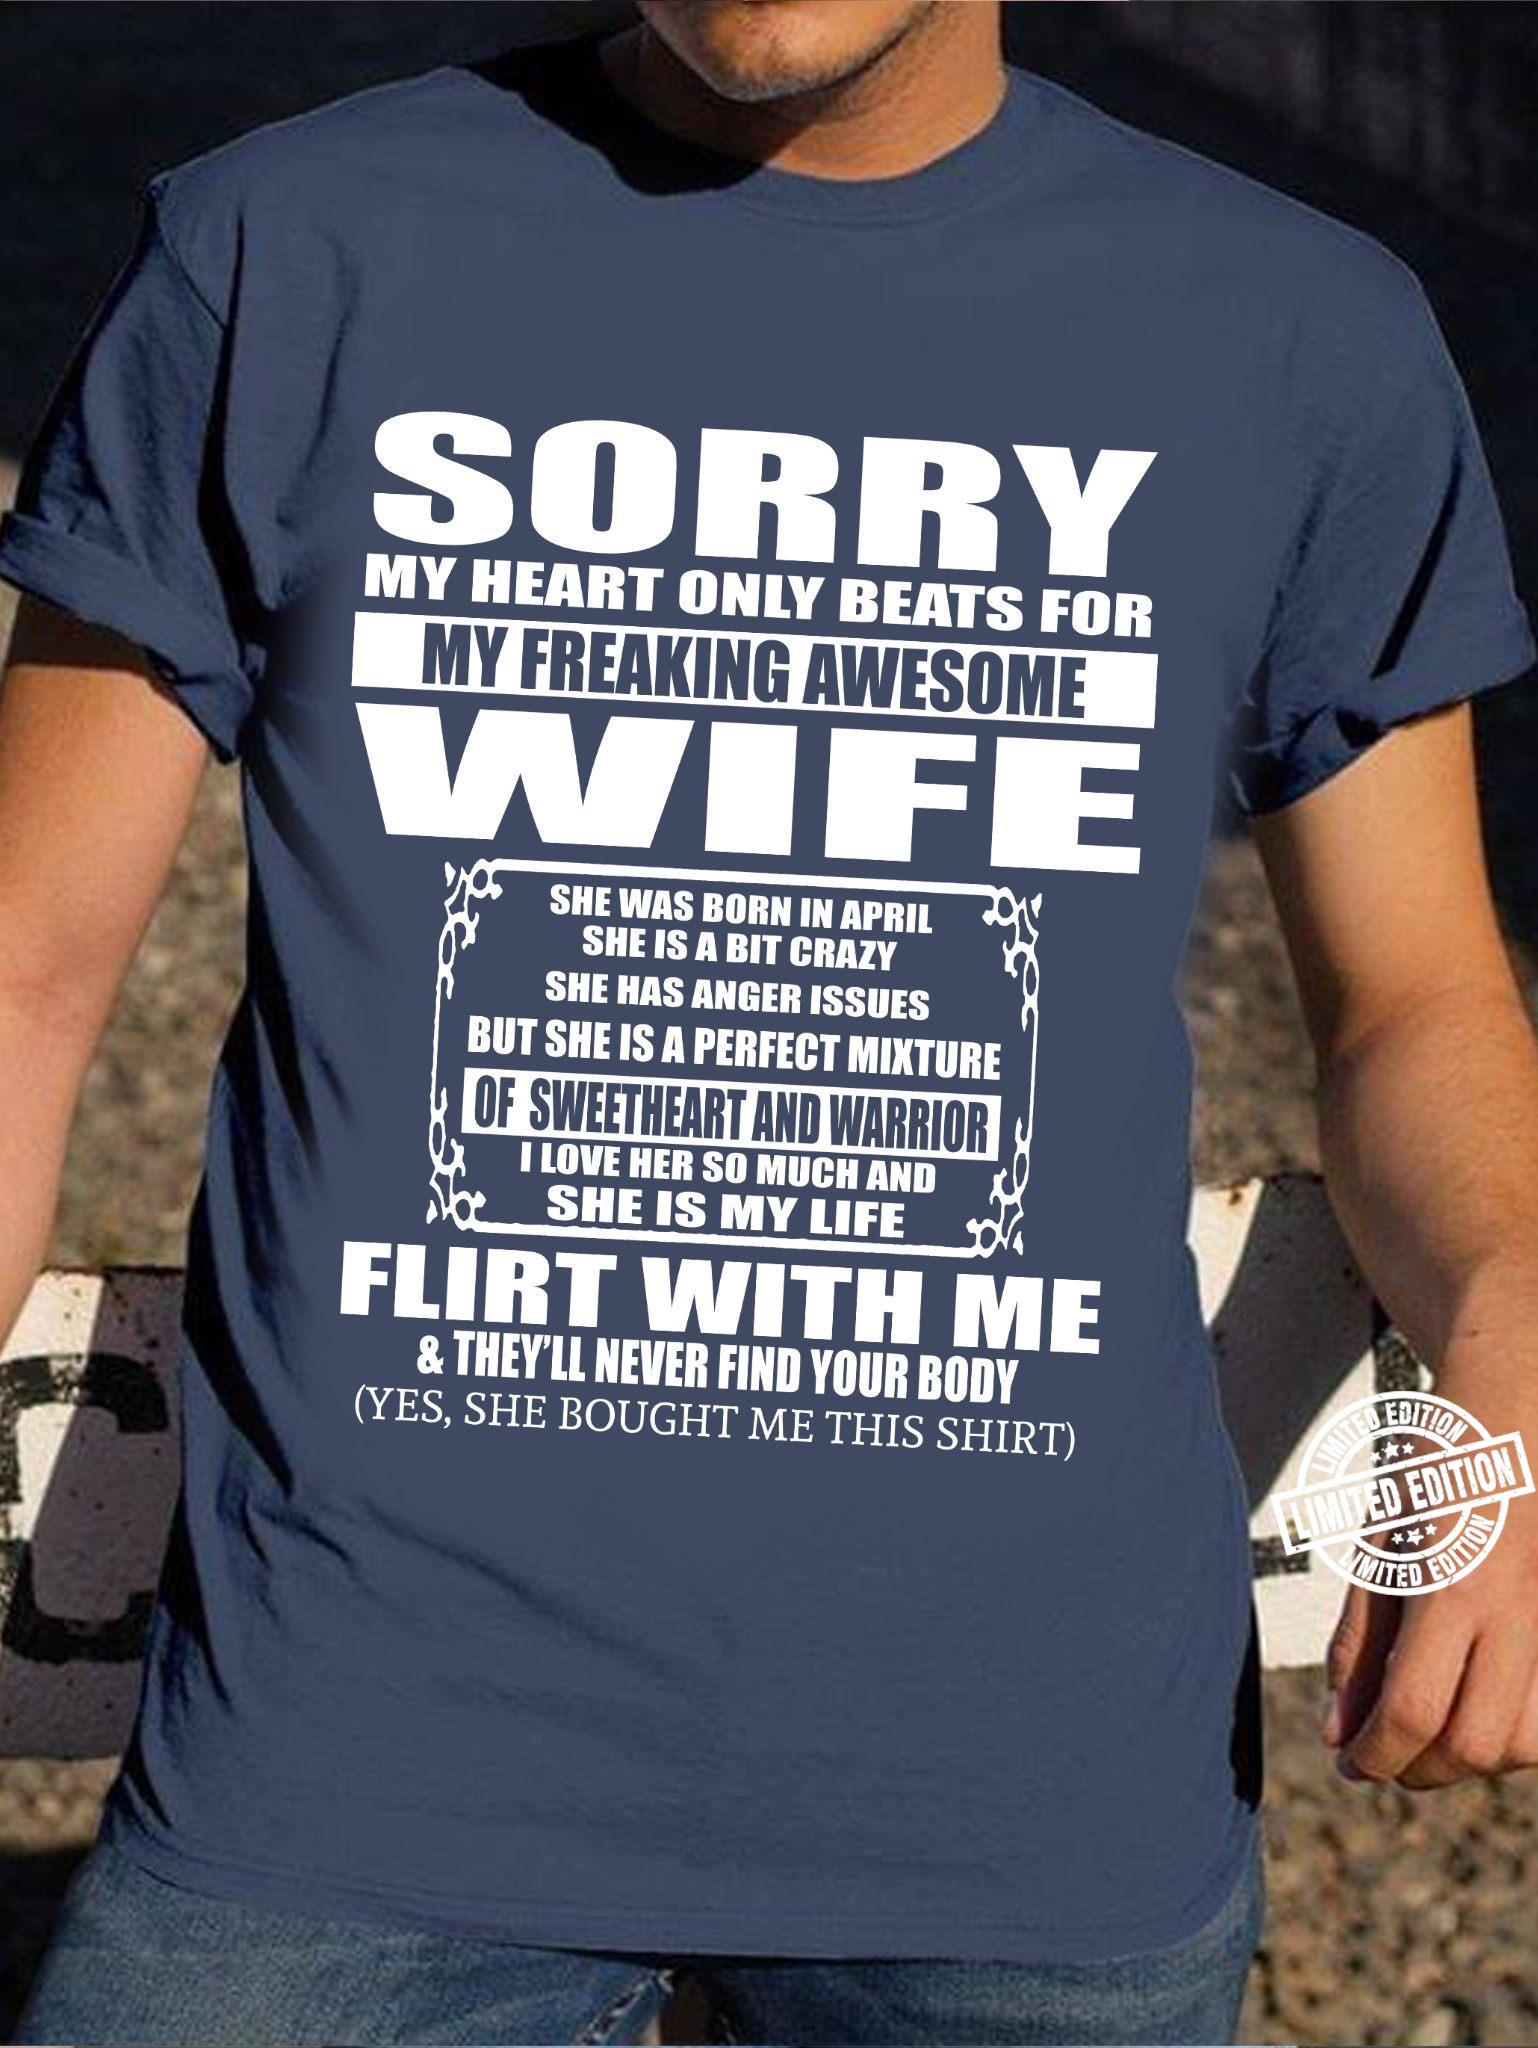 Sorry my heart only beats for my freaking awesome wife flirt with me shirt